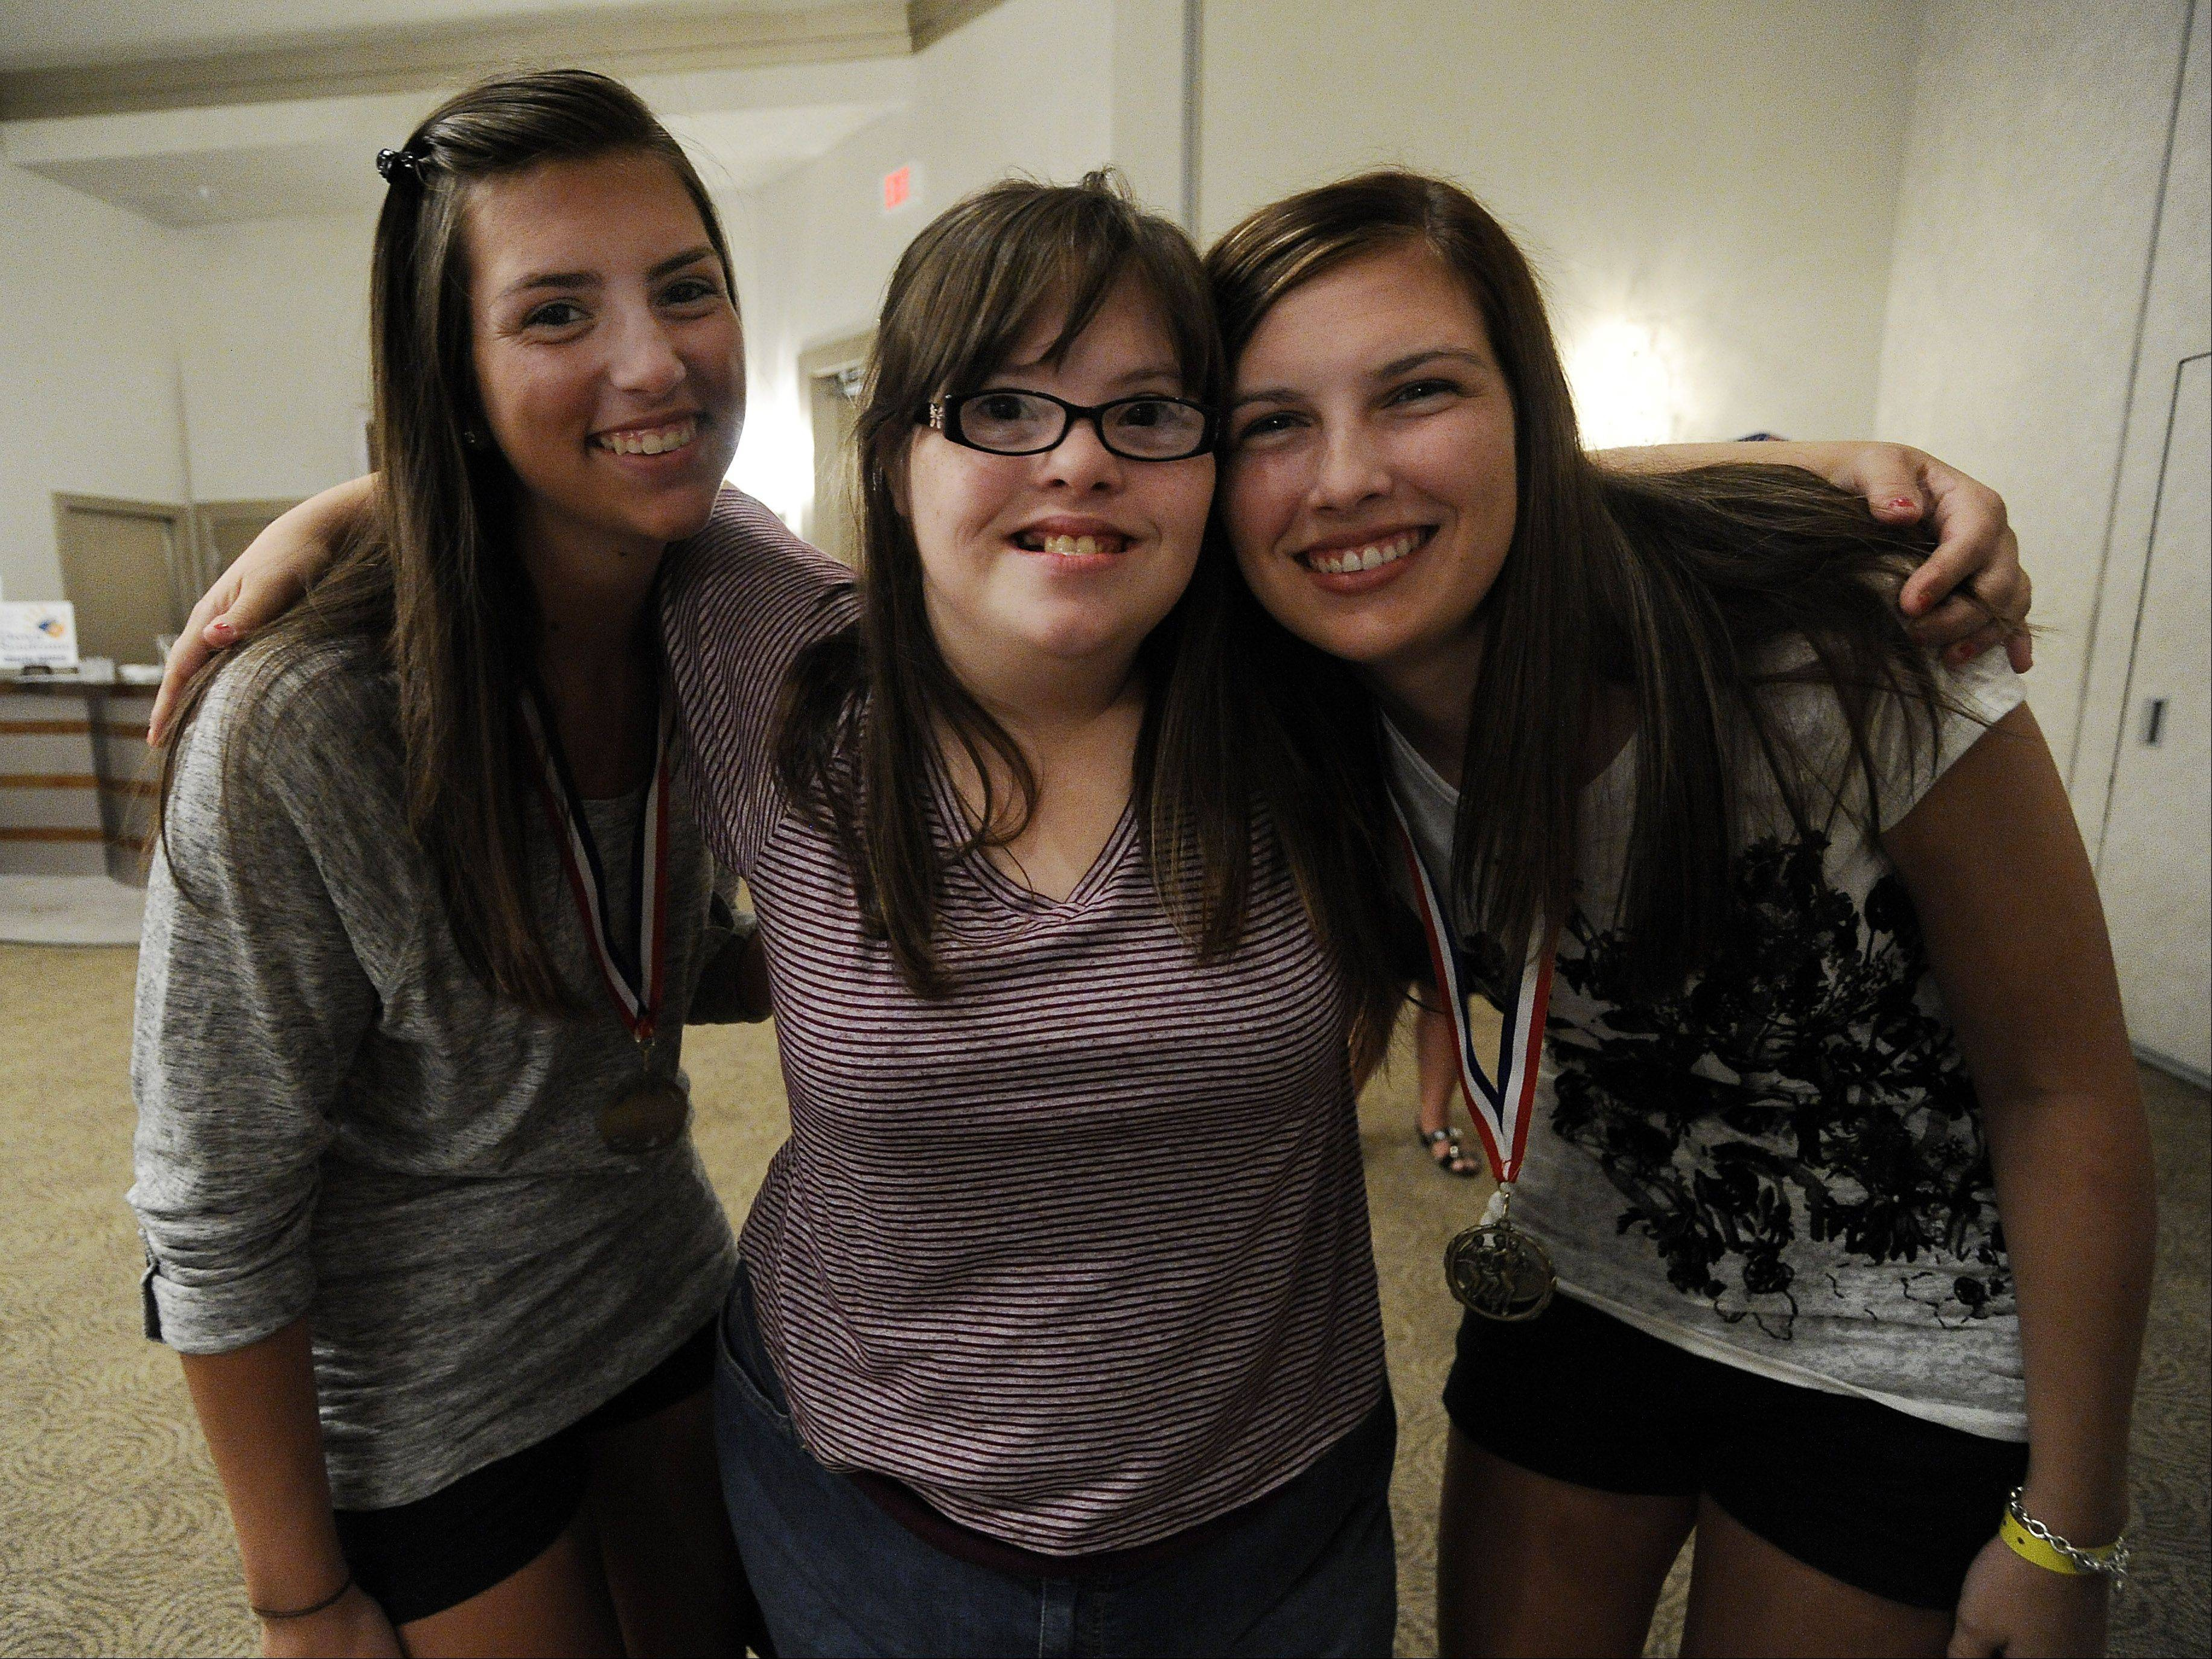 Kelsey Nolan, 17, center, is proud of her sisters, Lindsey, left, and Brittany, for participating in the Rock 'n Roll marathon.